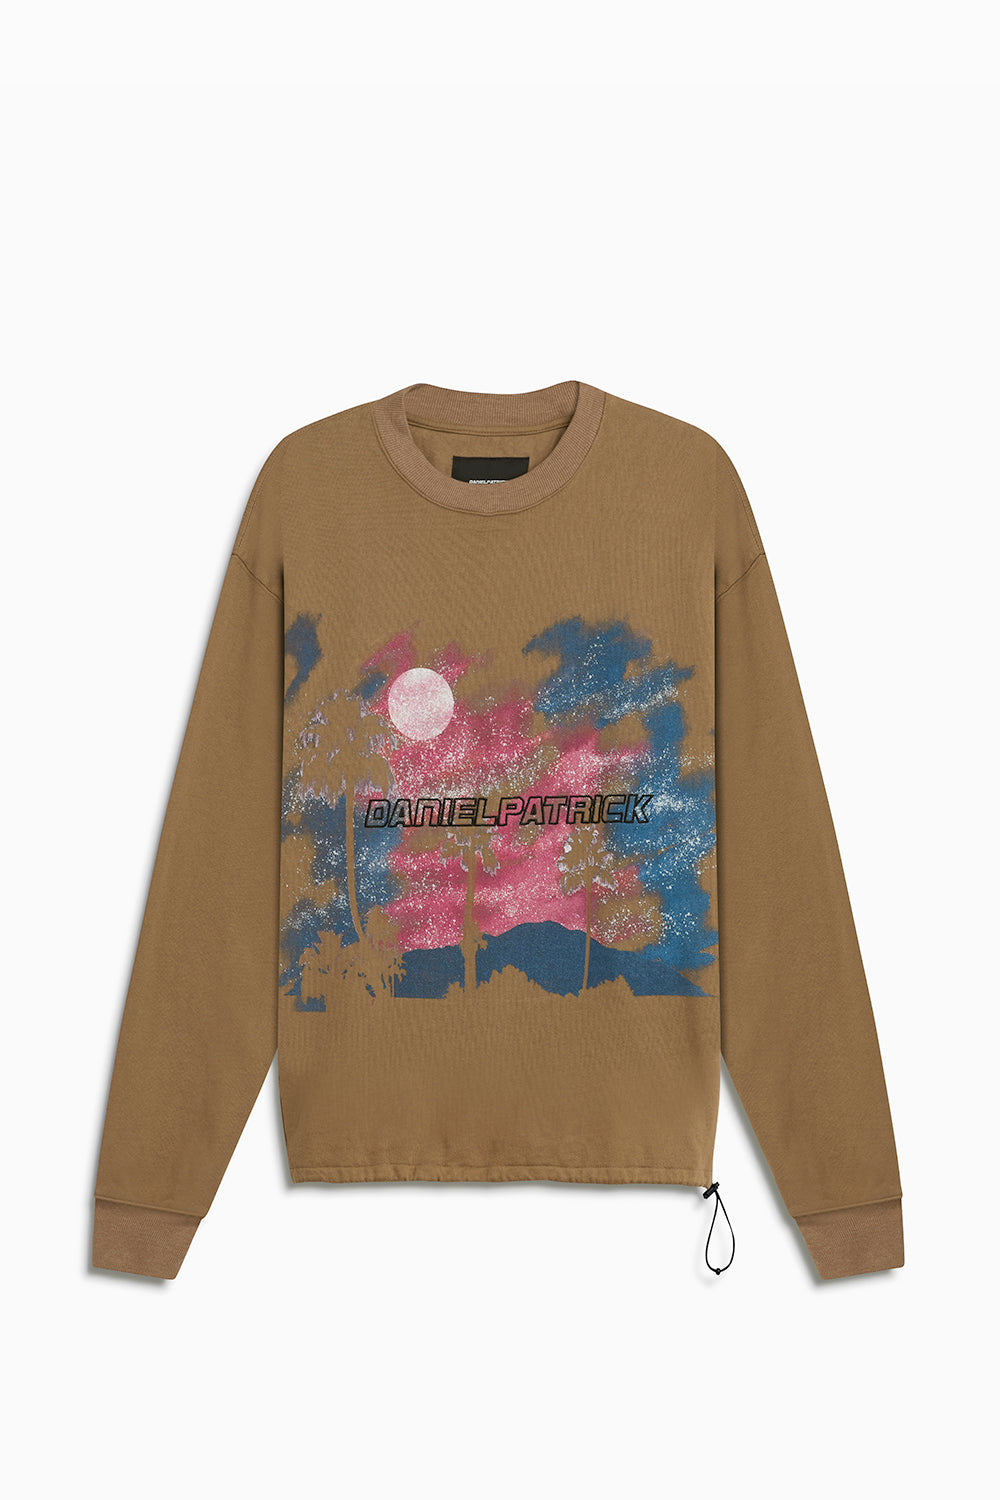 sunset bungee sweatshirt / mojave + pink + blue